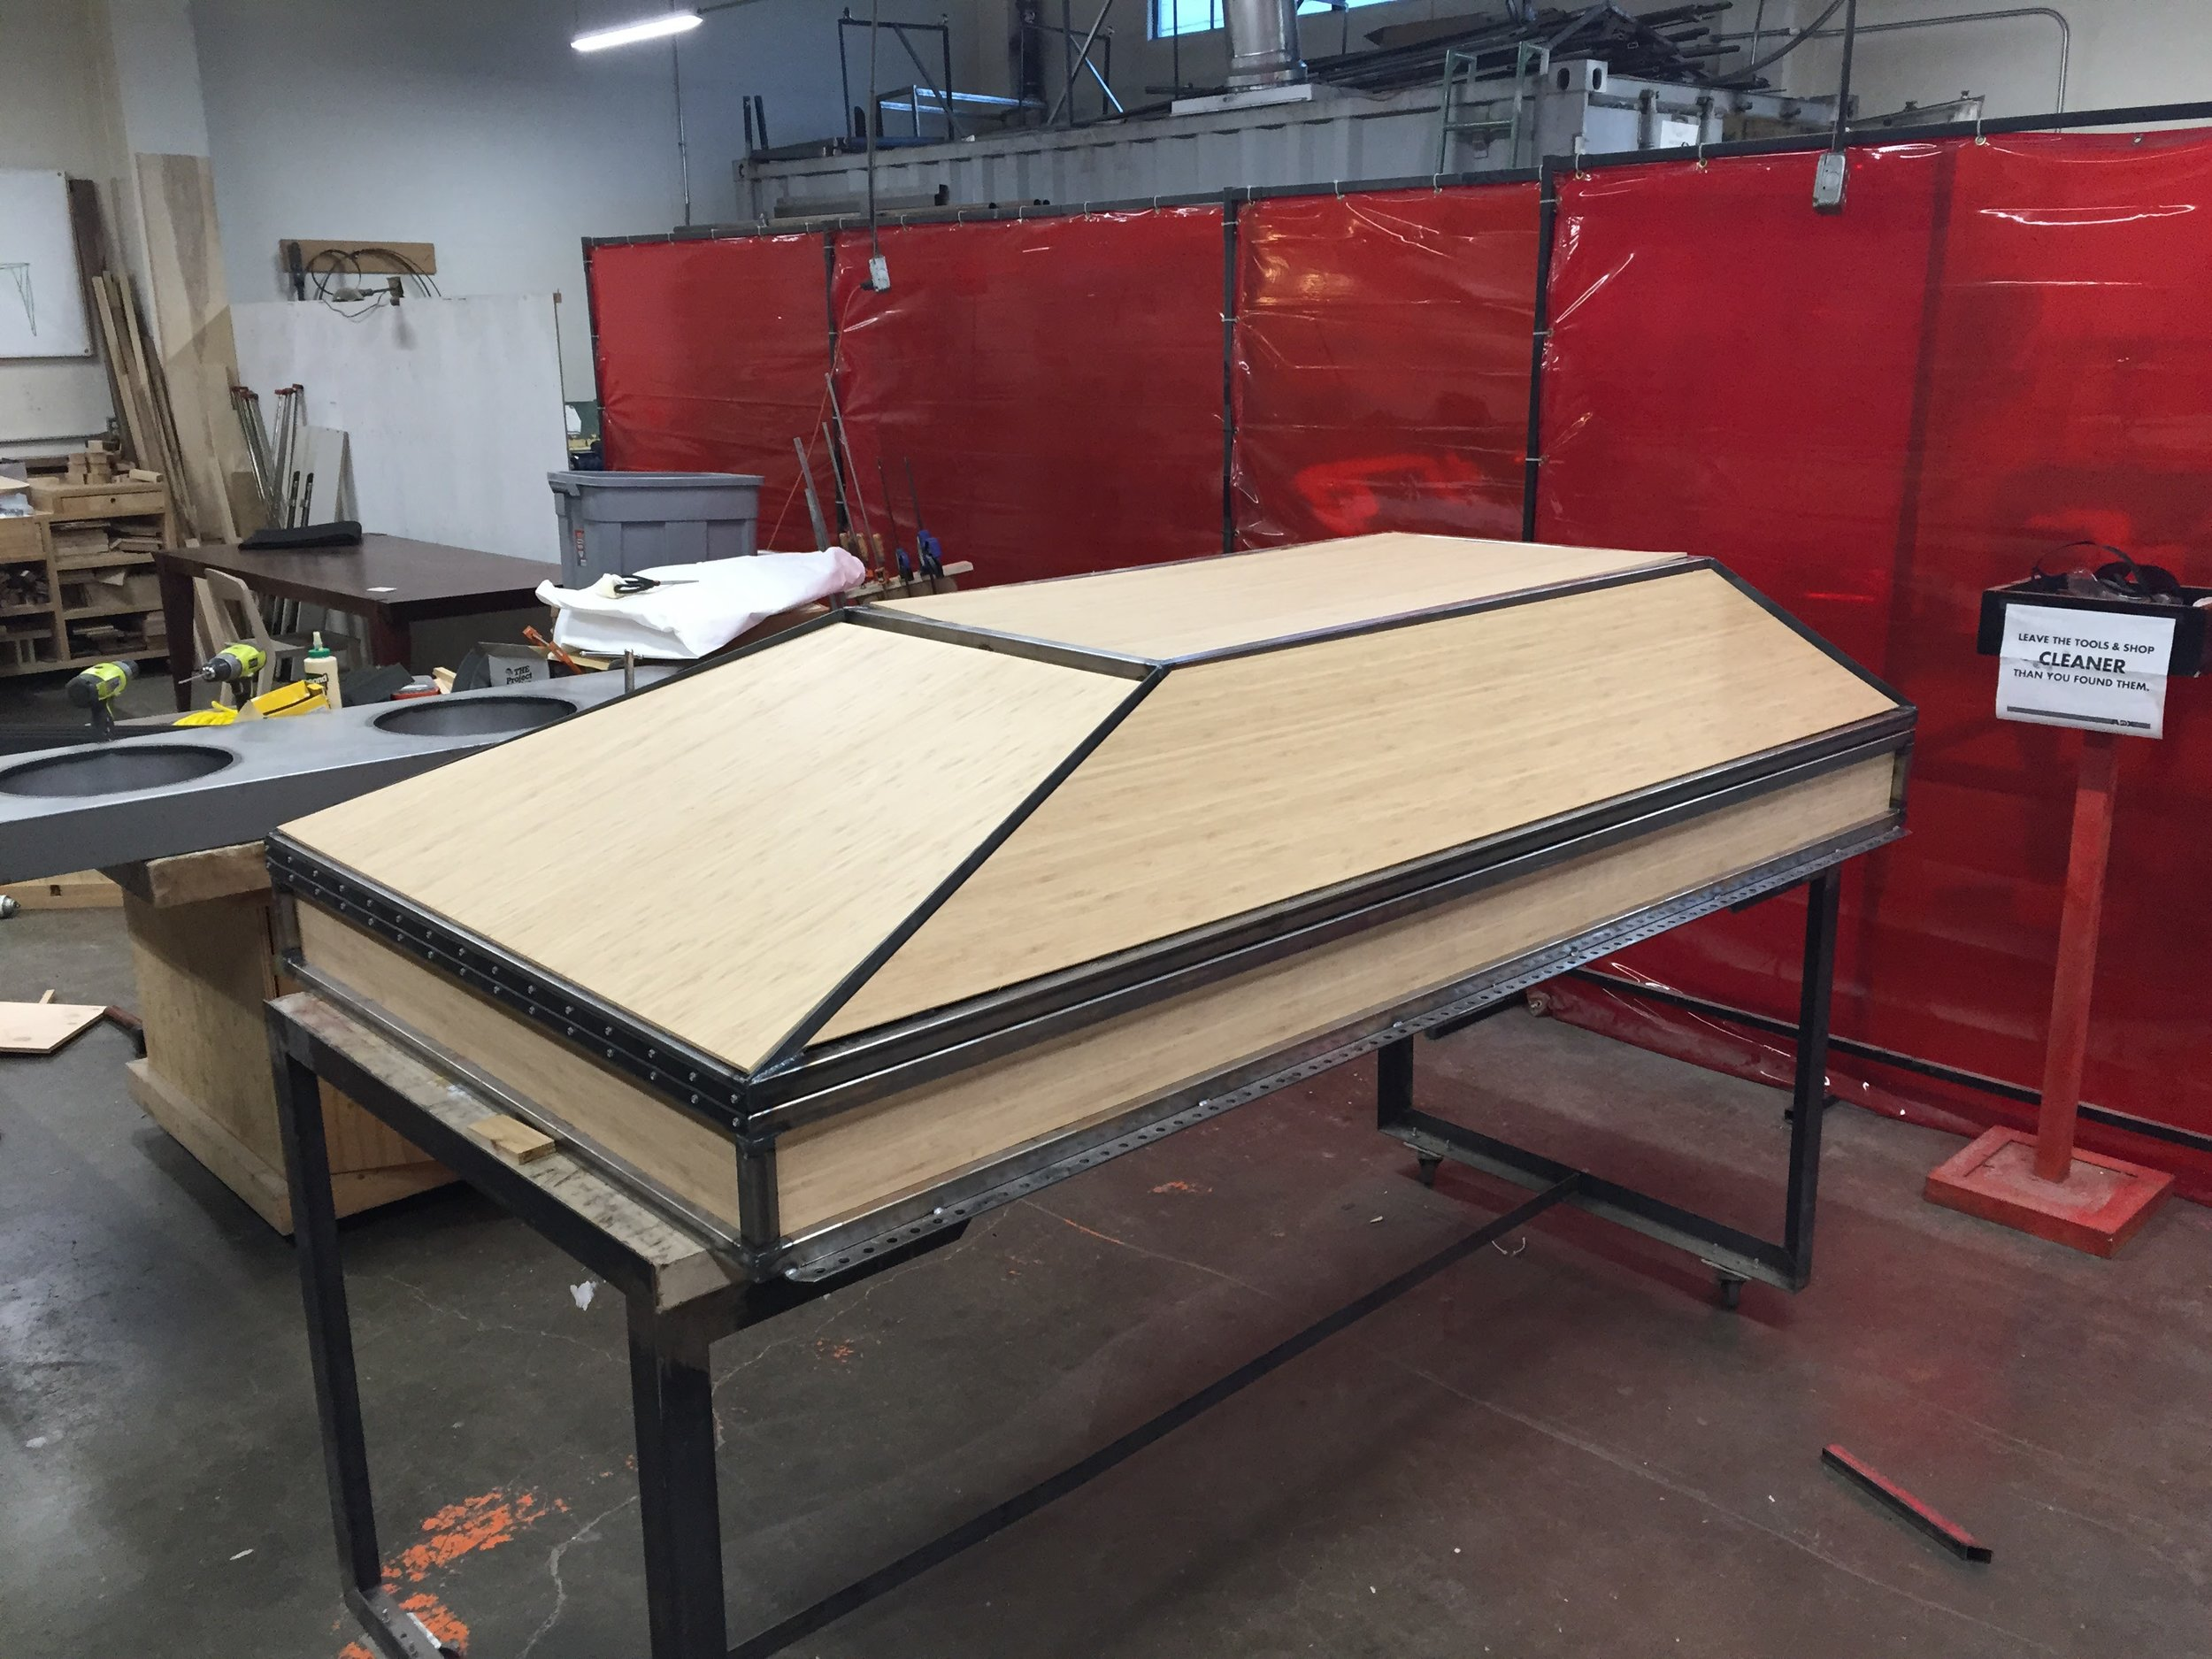 All panels dry fit